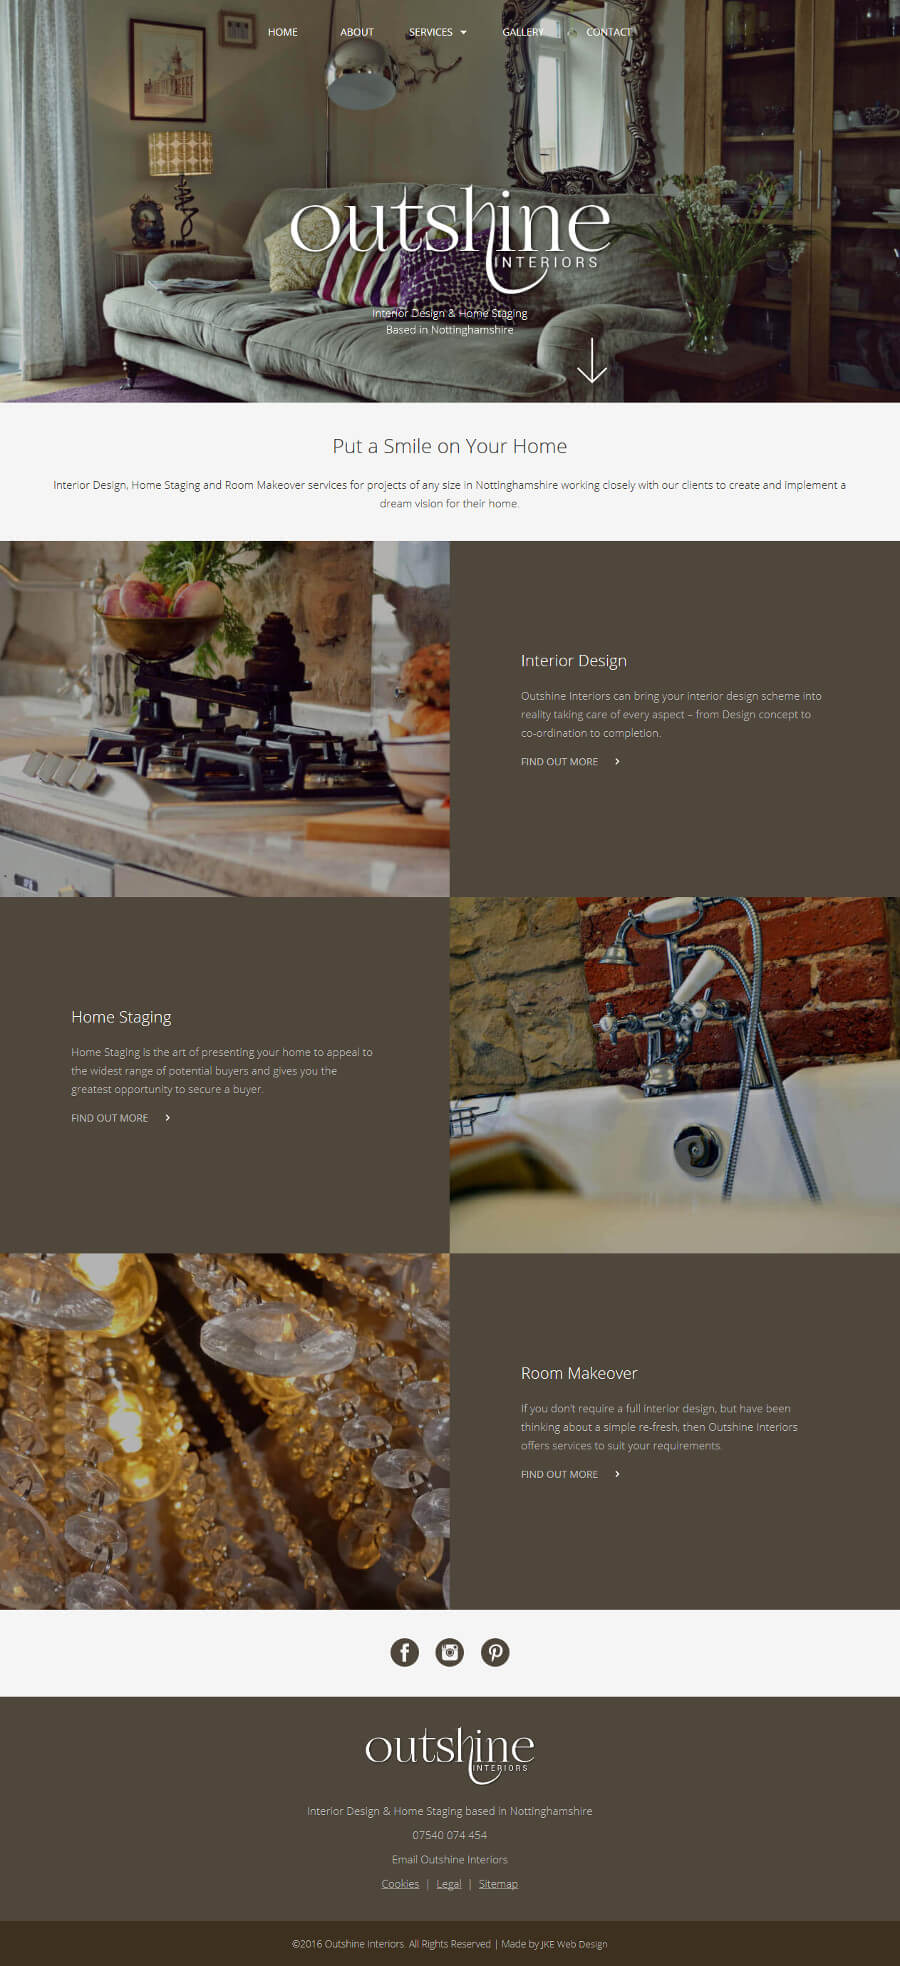 Outshine Interiors website